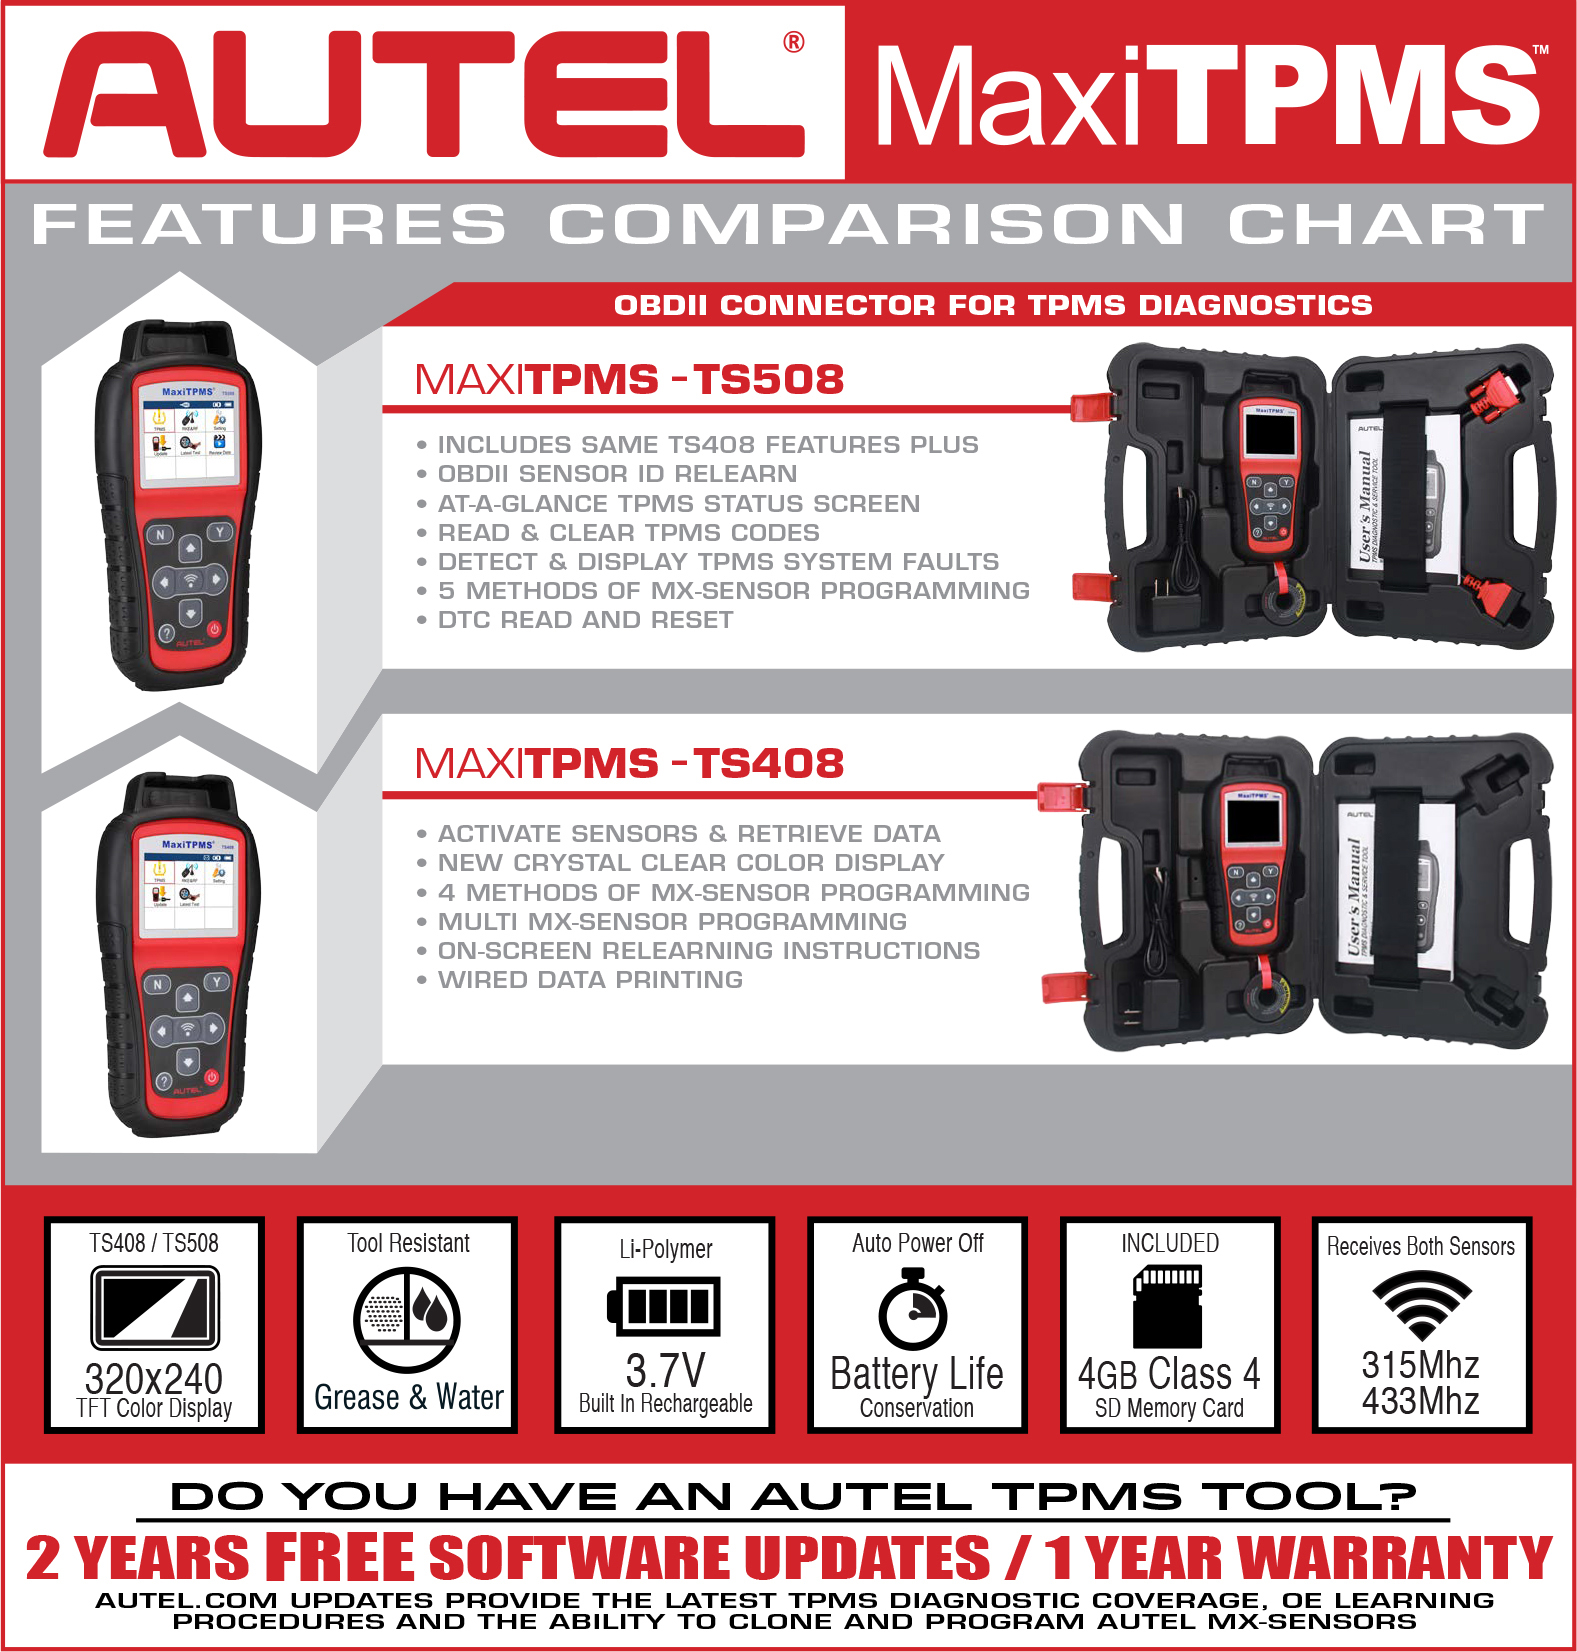 TS408/TS508 Comparison Chart : Autel Intelligent Technology